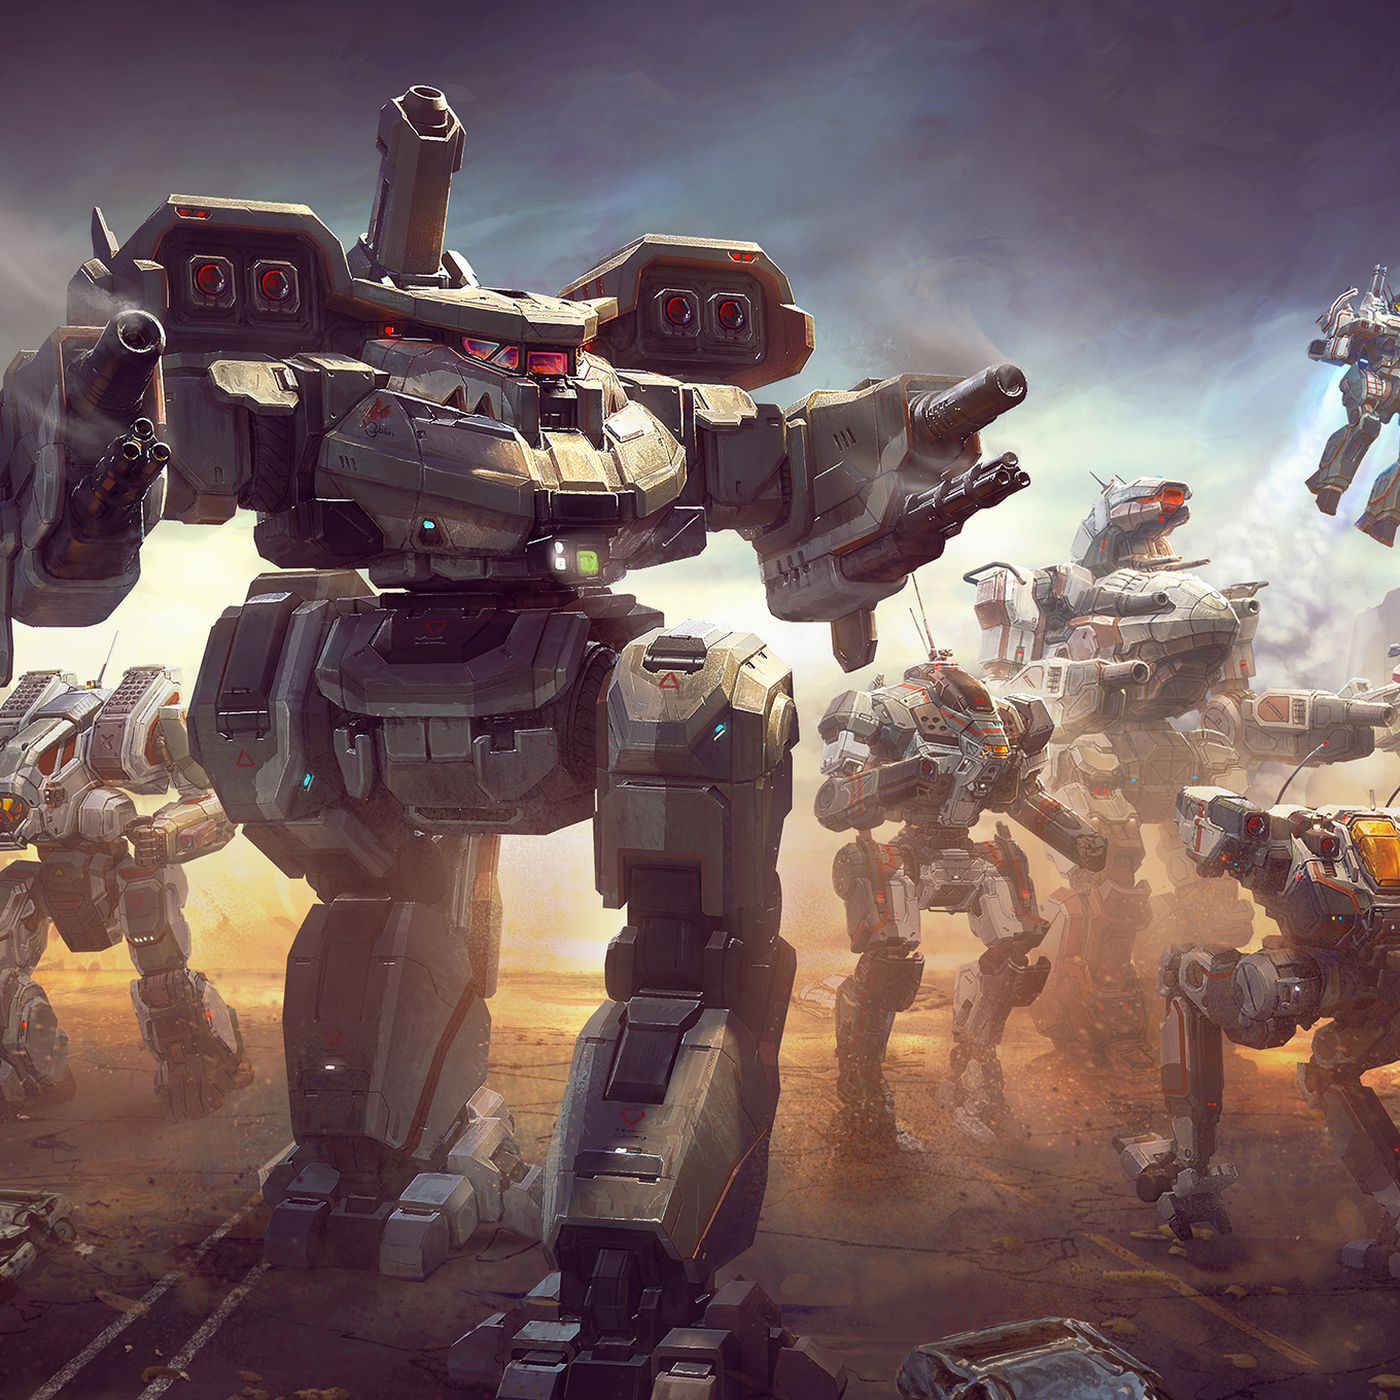 Battletech 2020 Mech List.Battletech S Next Update Brings 10 New Mechs In All Plus A